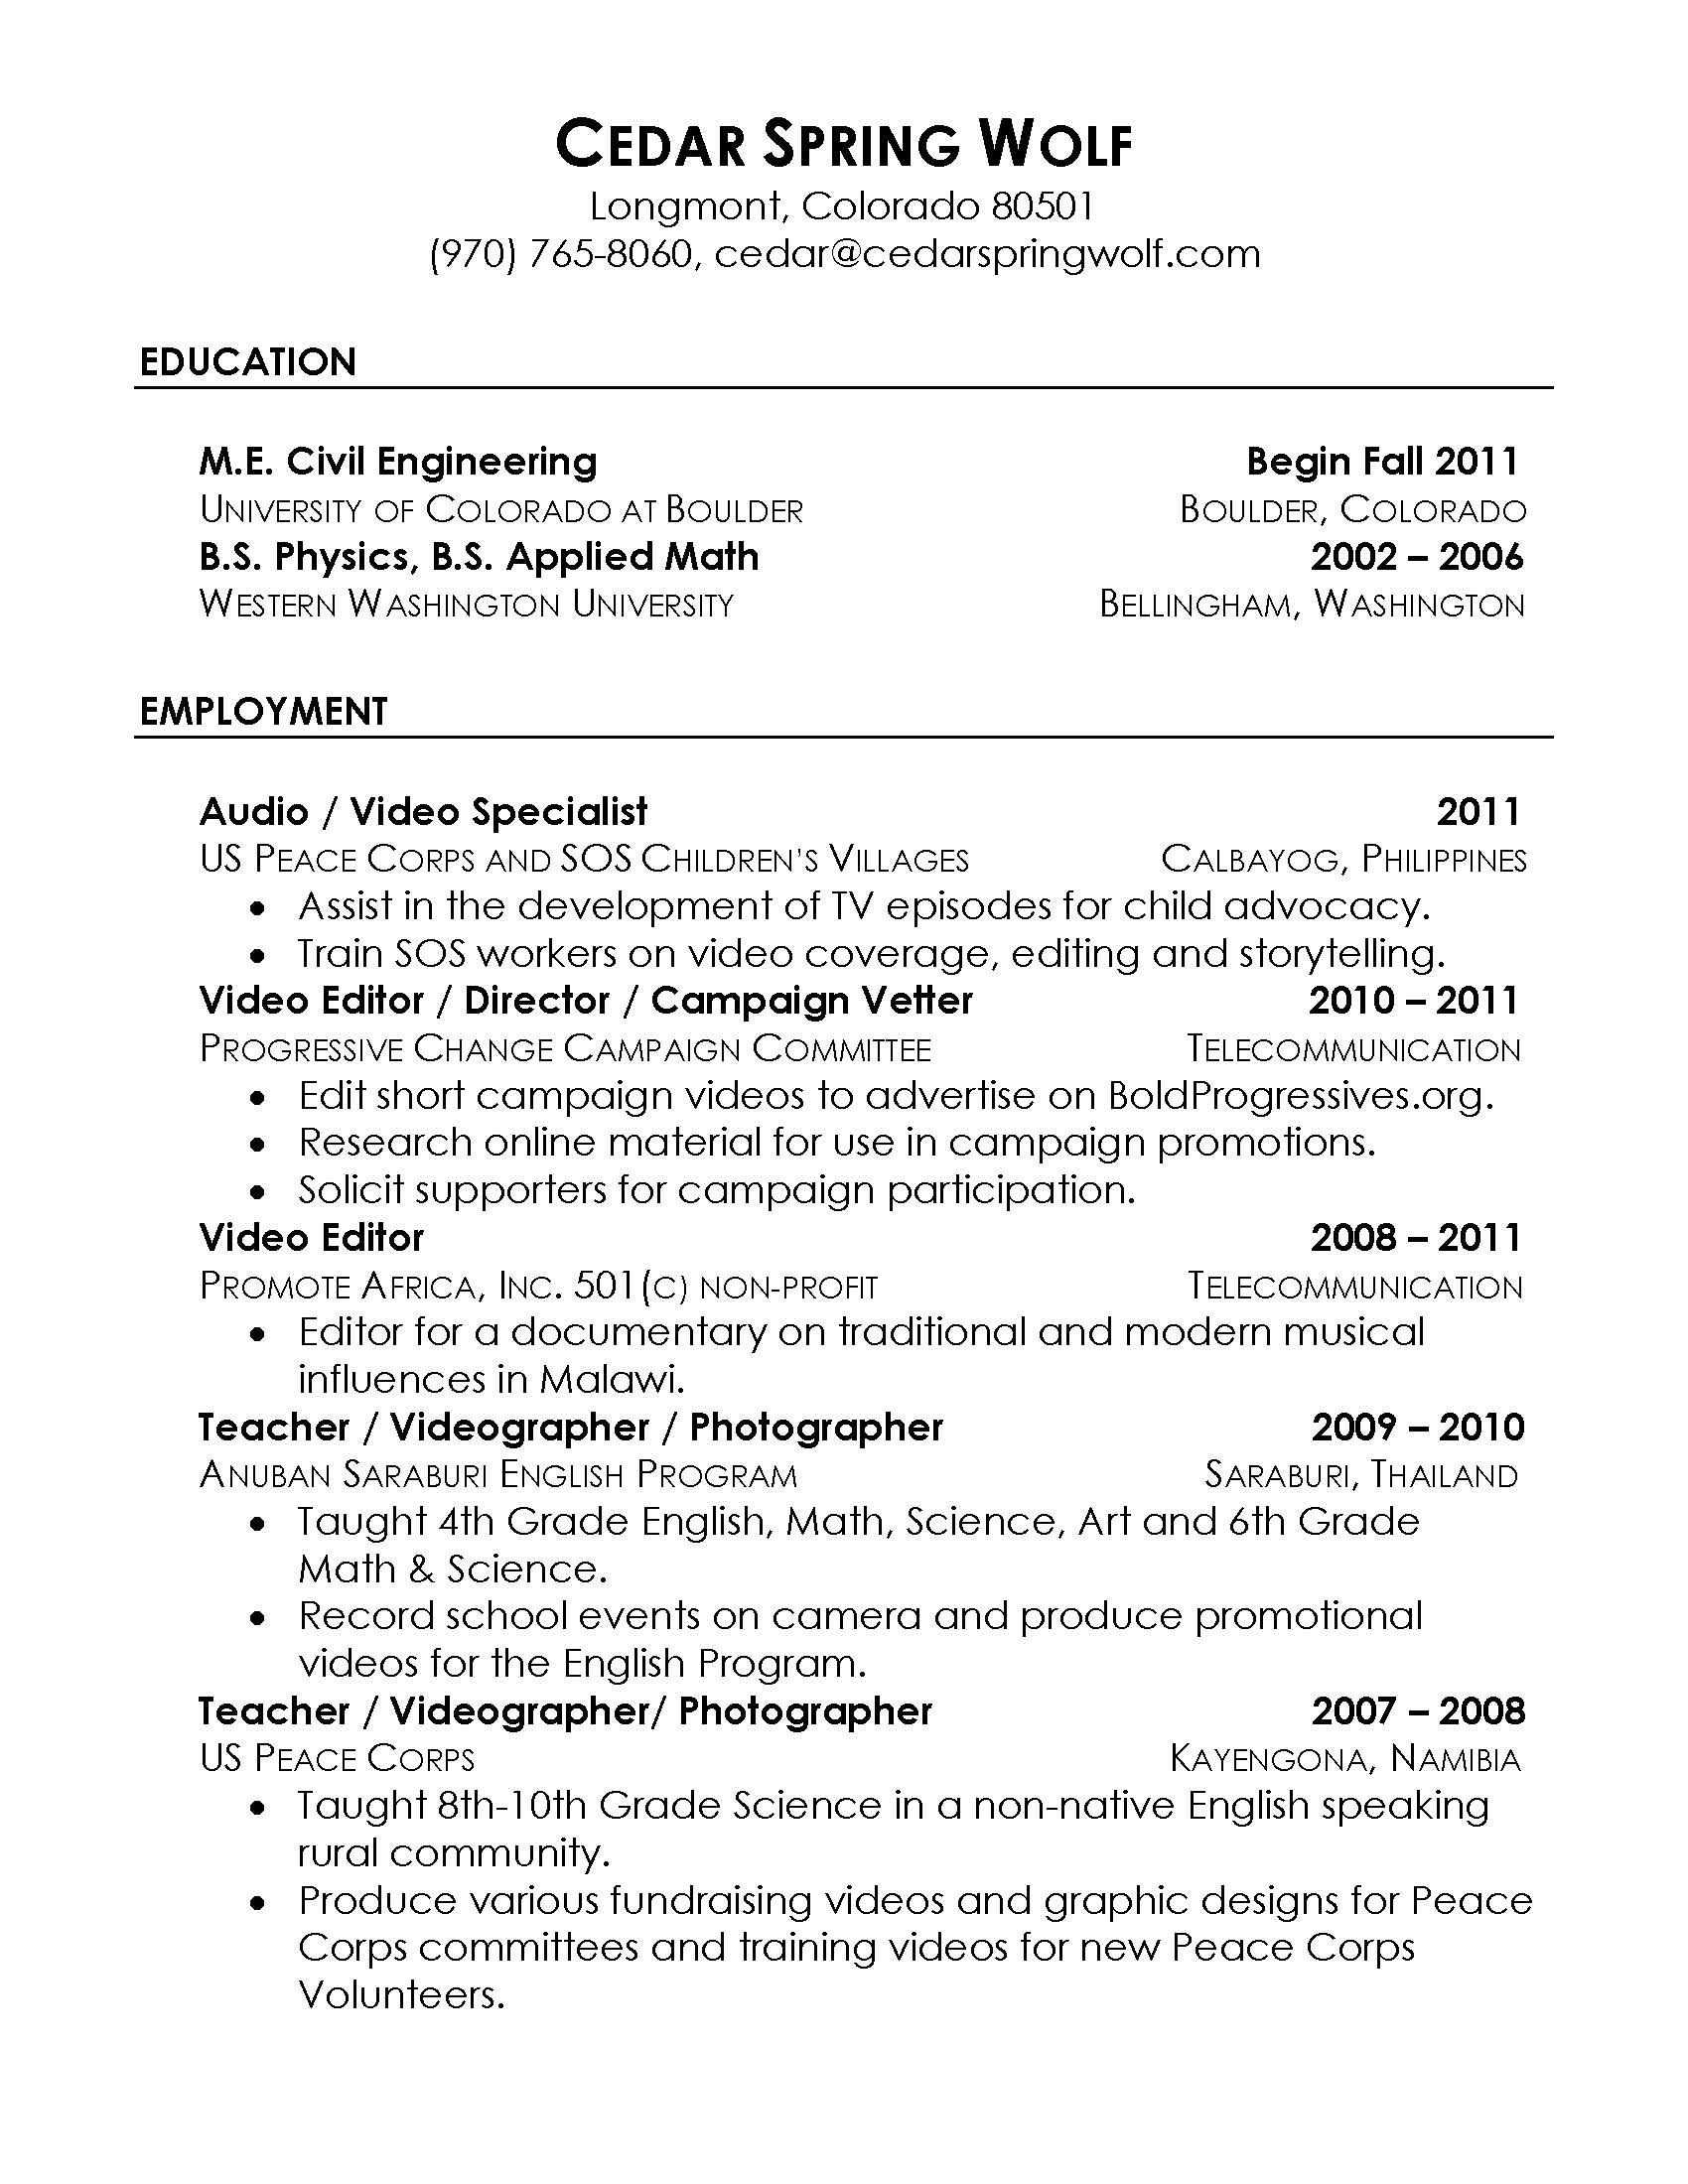 reference list sample harvard coverletter for jobs reference list sample harvard using the harvard reference style wiki how to write a reference page